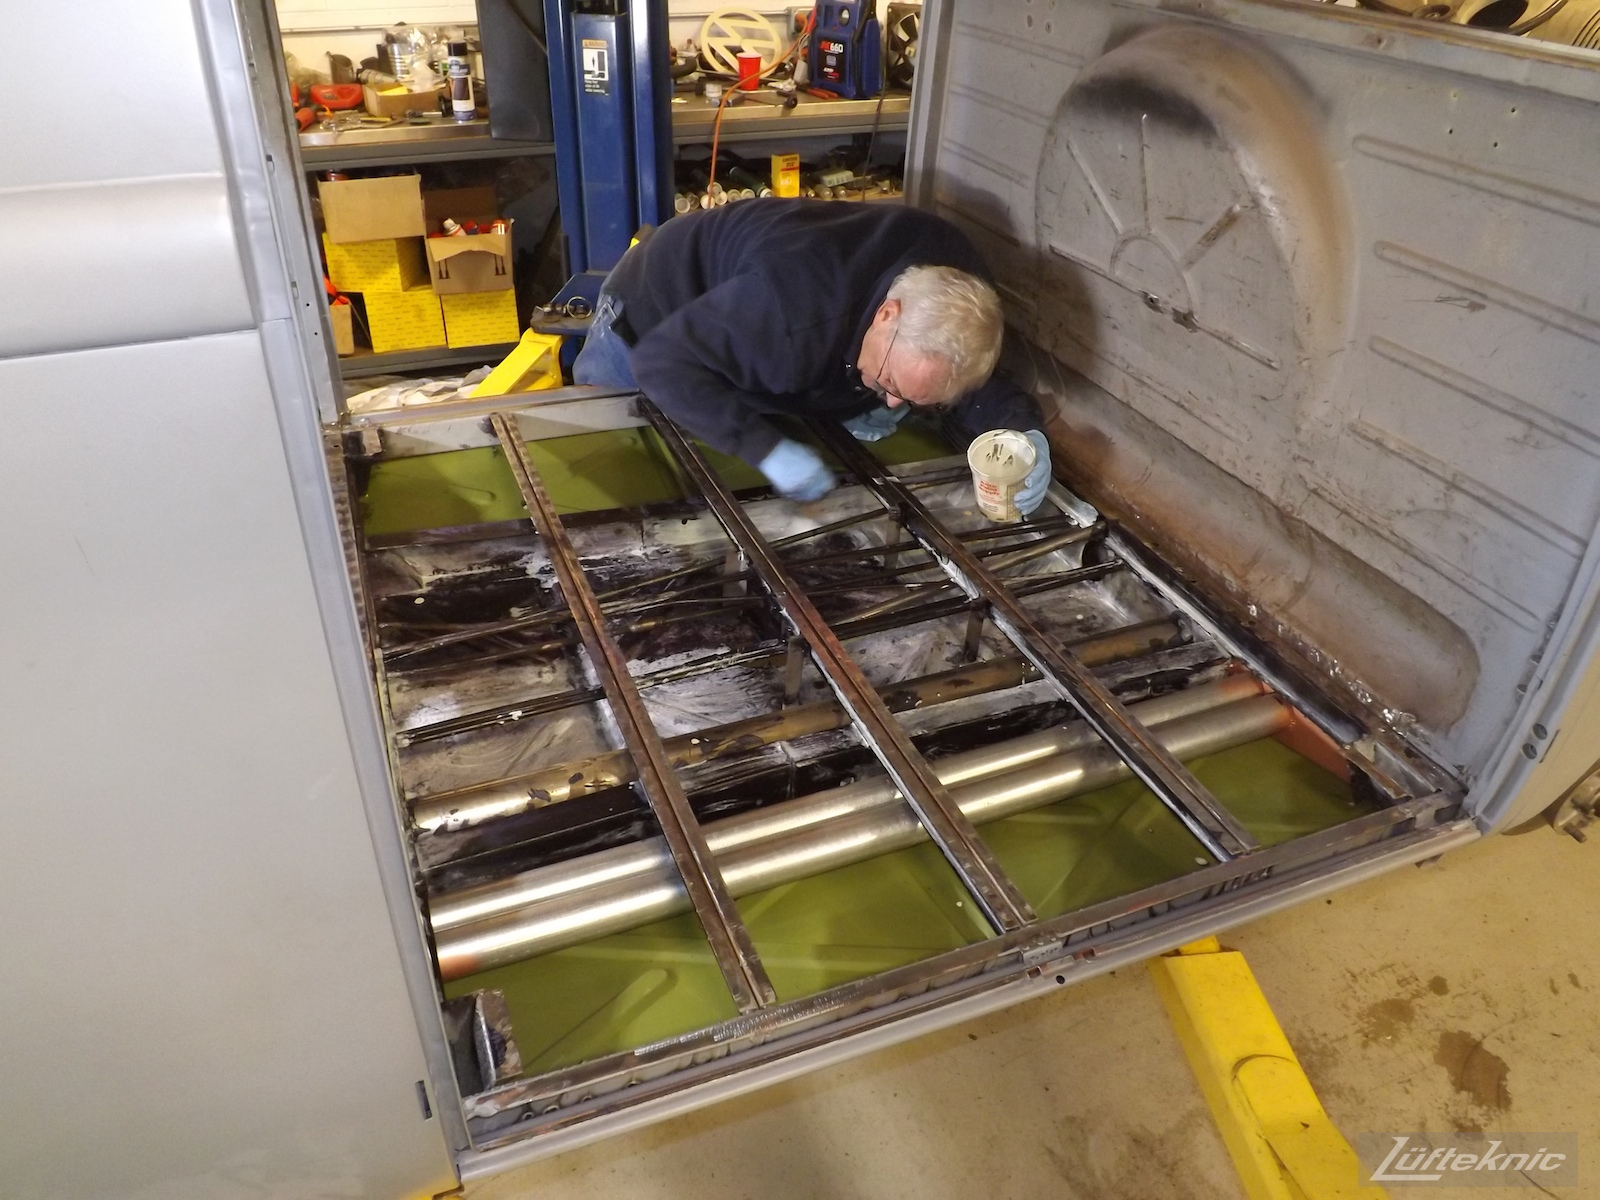 1956 Volkswagen double panel Transporter Lüfteknic Porsche Bus floor installation.